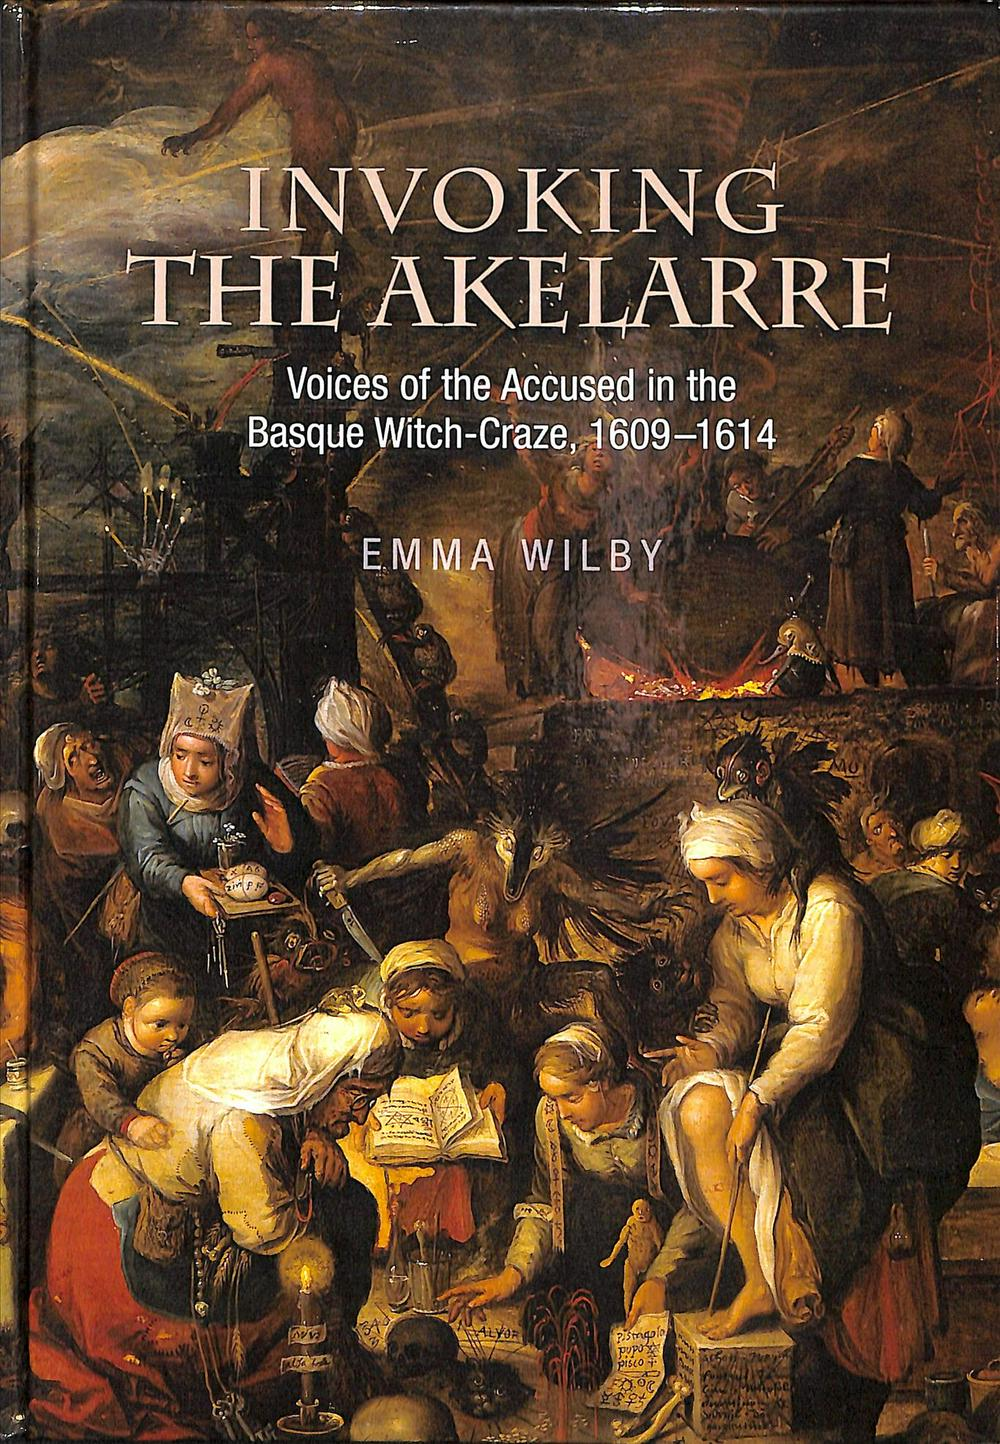 Invoking the Akelarre: Voices of the Accused in the Basque Witch-craze, 1609-1614